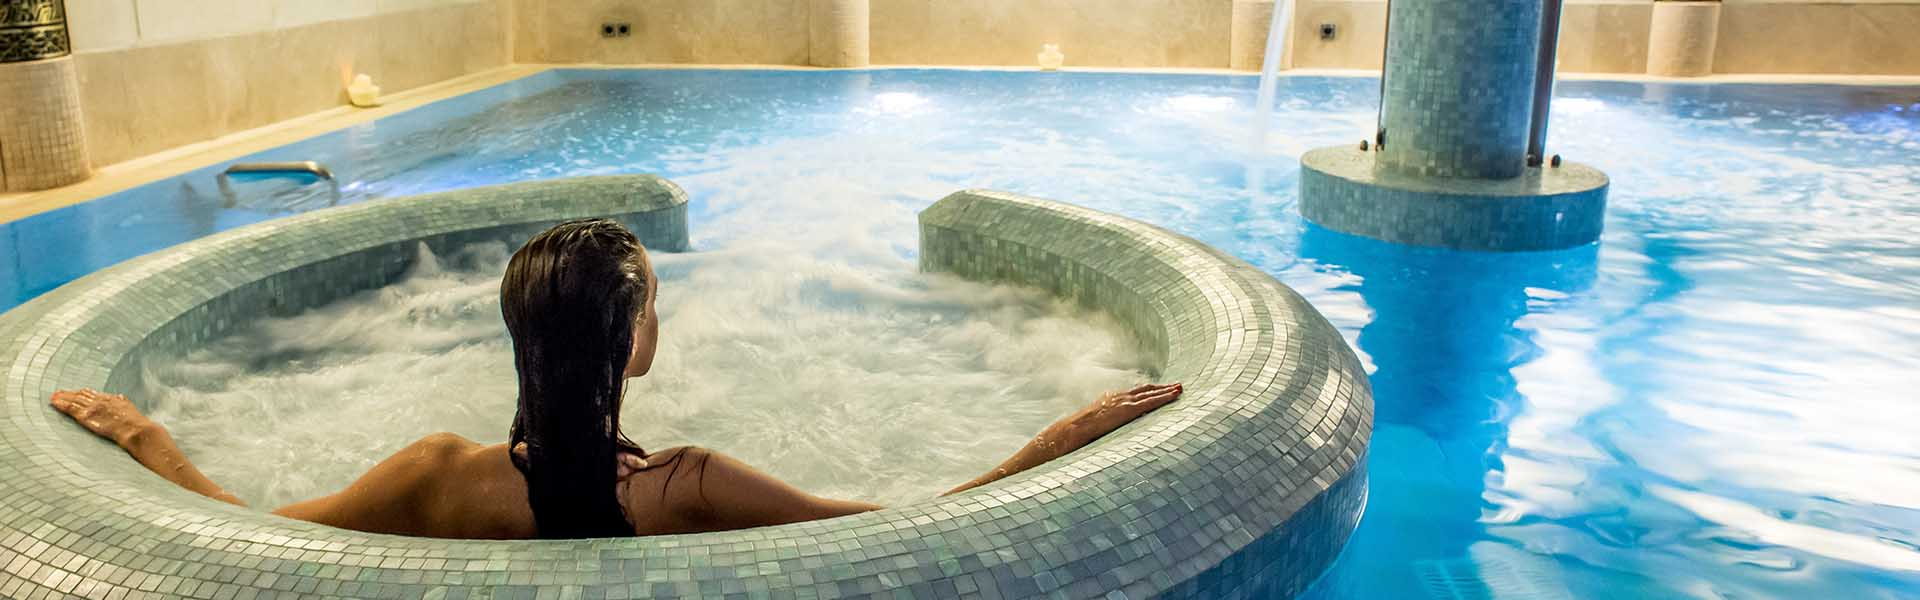 Hydrotherapy at SenSpa | Careys Manor